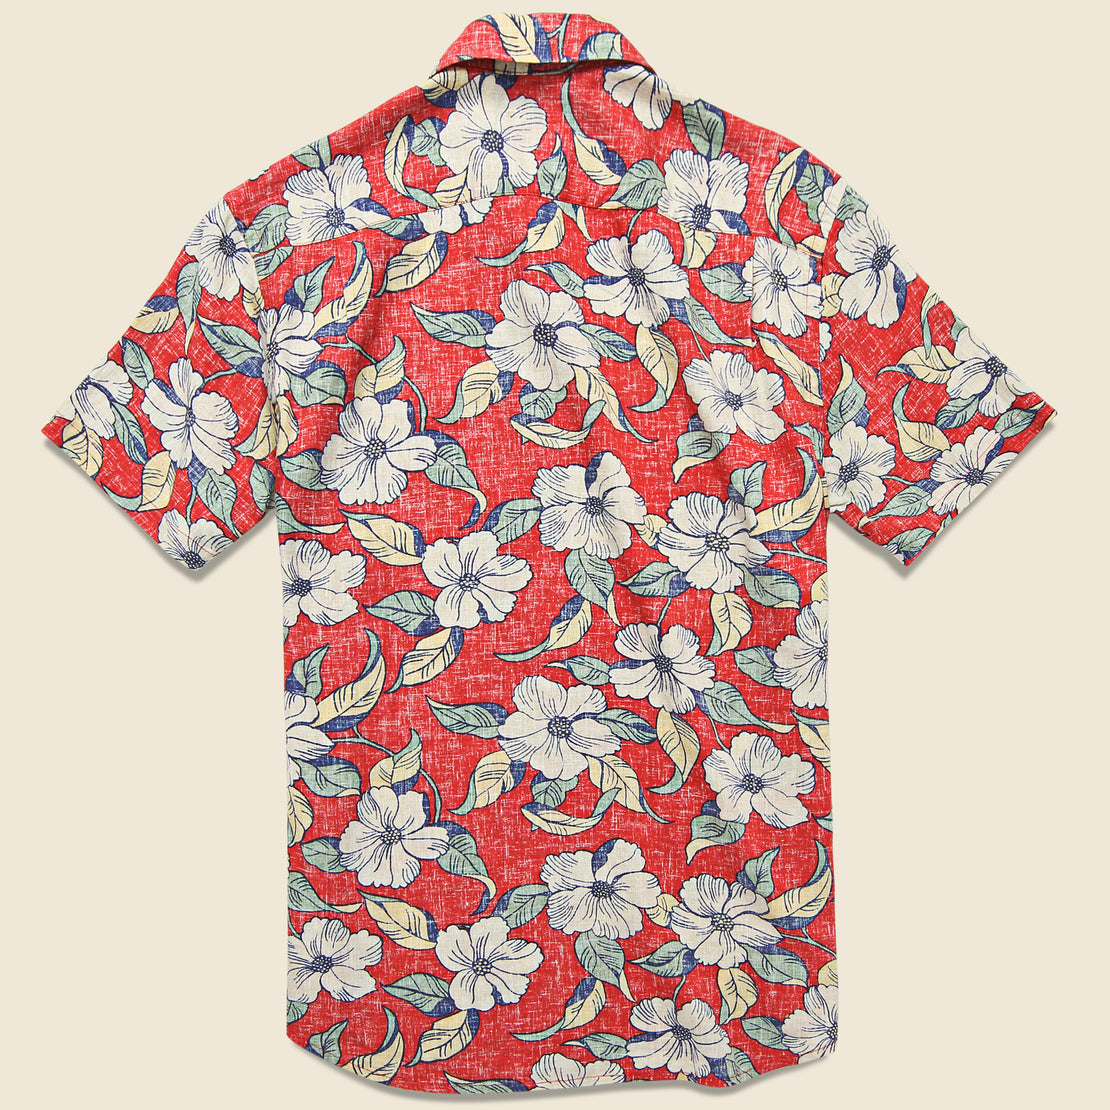 Reverse Print Coast Shirt - Red Retro